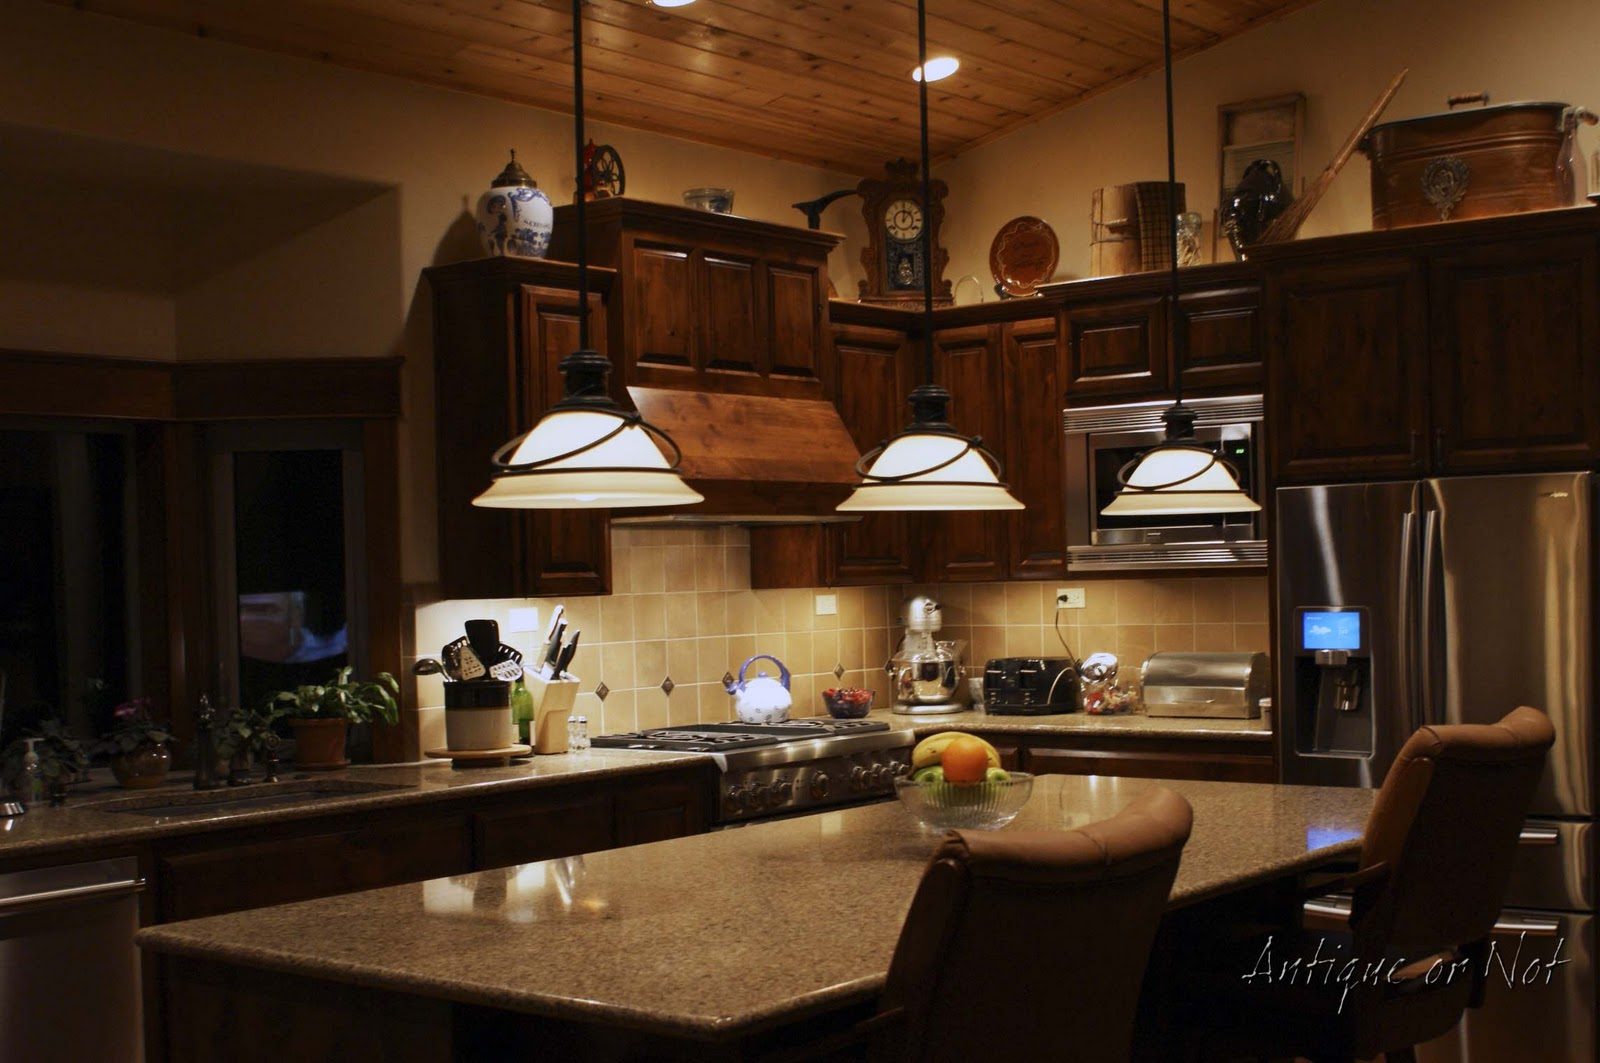 Over Cabinet Lighting Ideas. Over Cabinet Lighting Ideas E